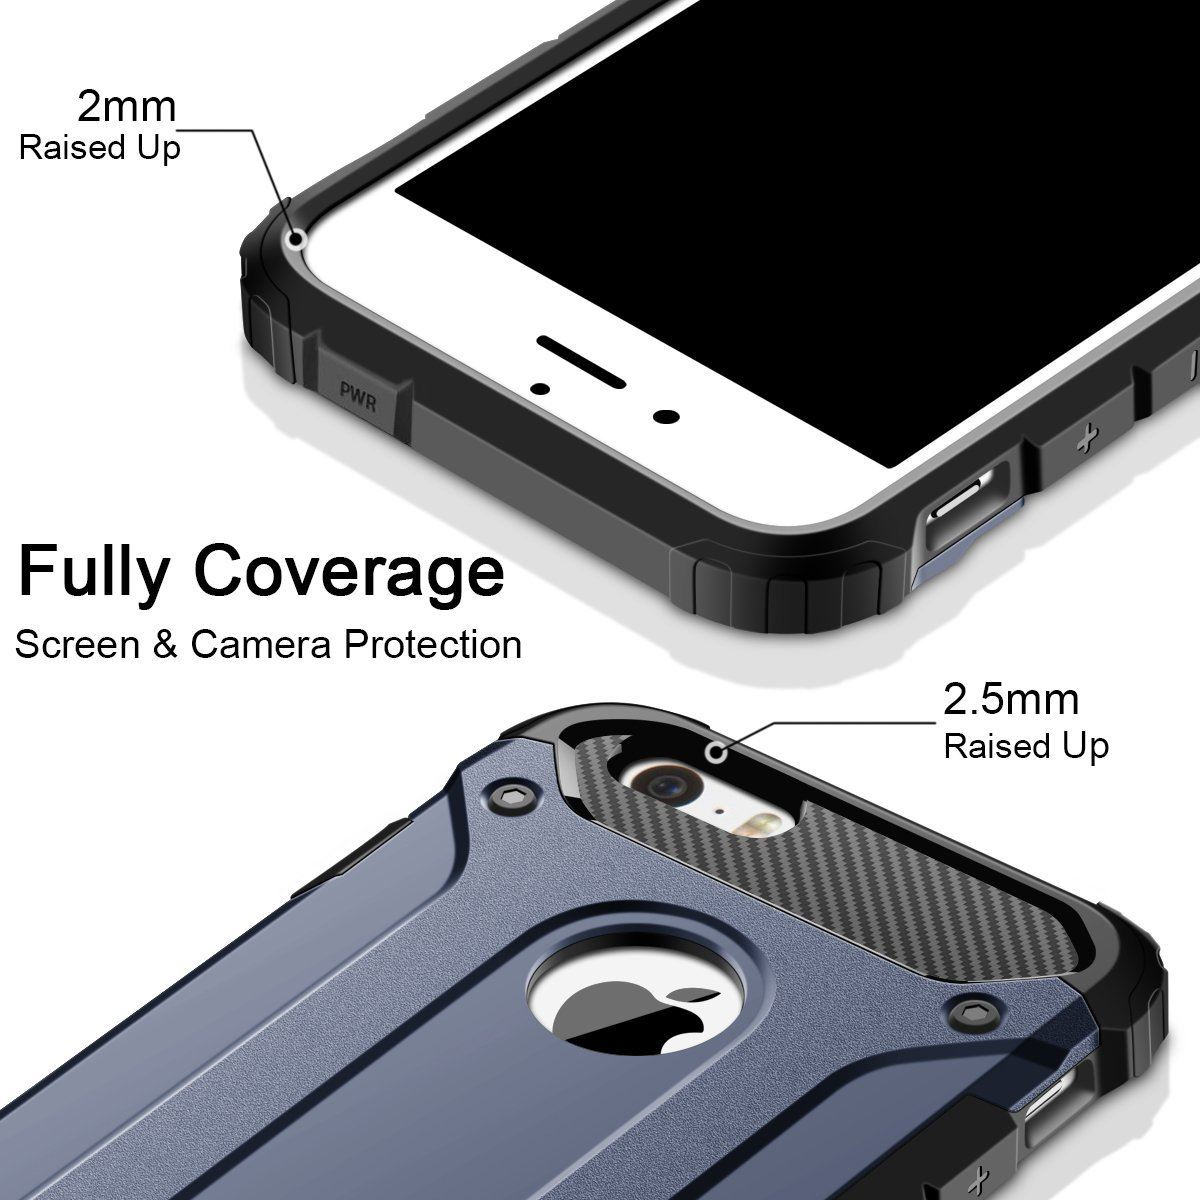 Hybrid-Armor-Shockproof-Rugged-Bumper-Case-For-Apple-iPhone-10-X-8-7-Plus-6s-5s miniature 61